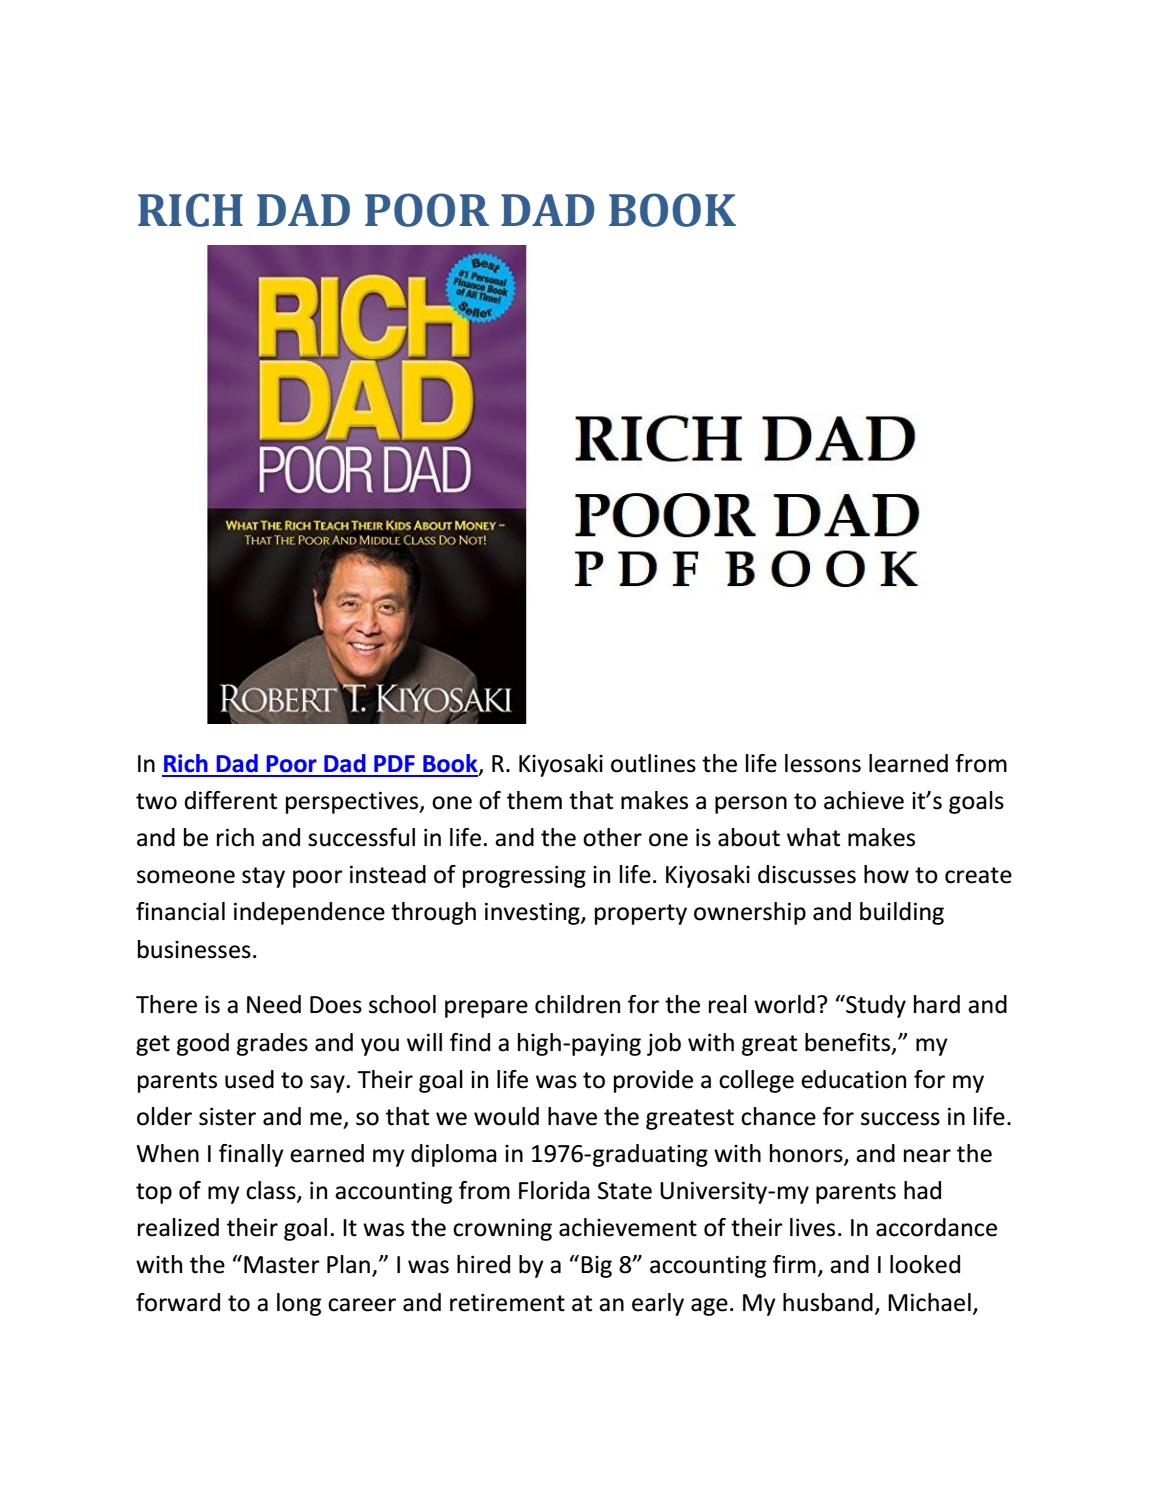 Rich Dad Poor Dad Pdf Free